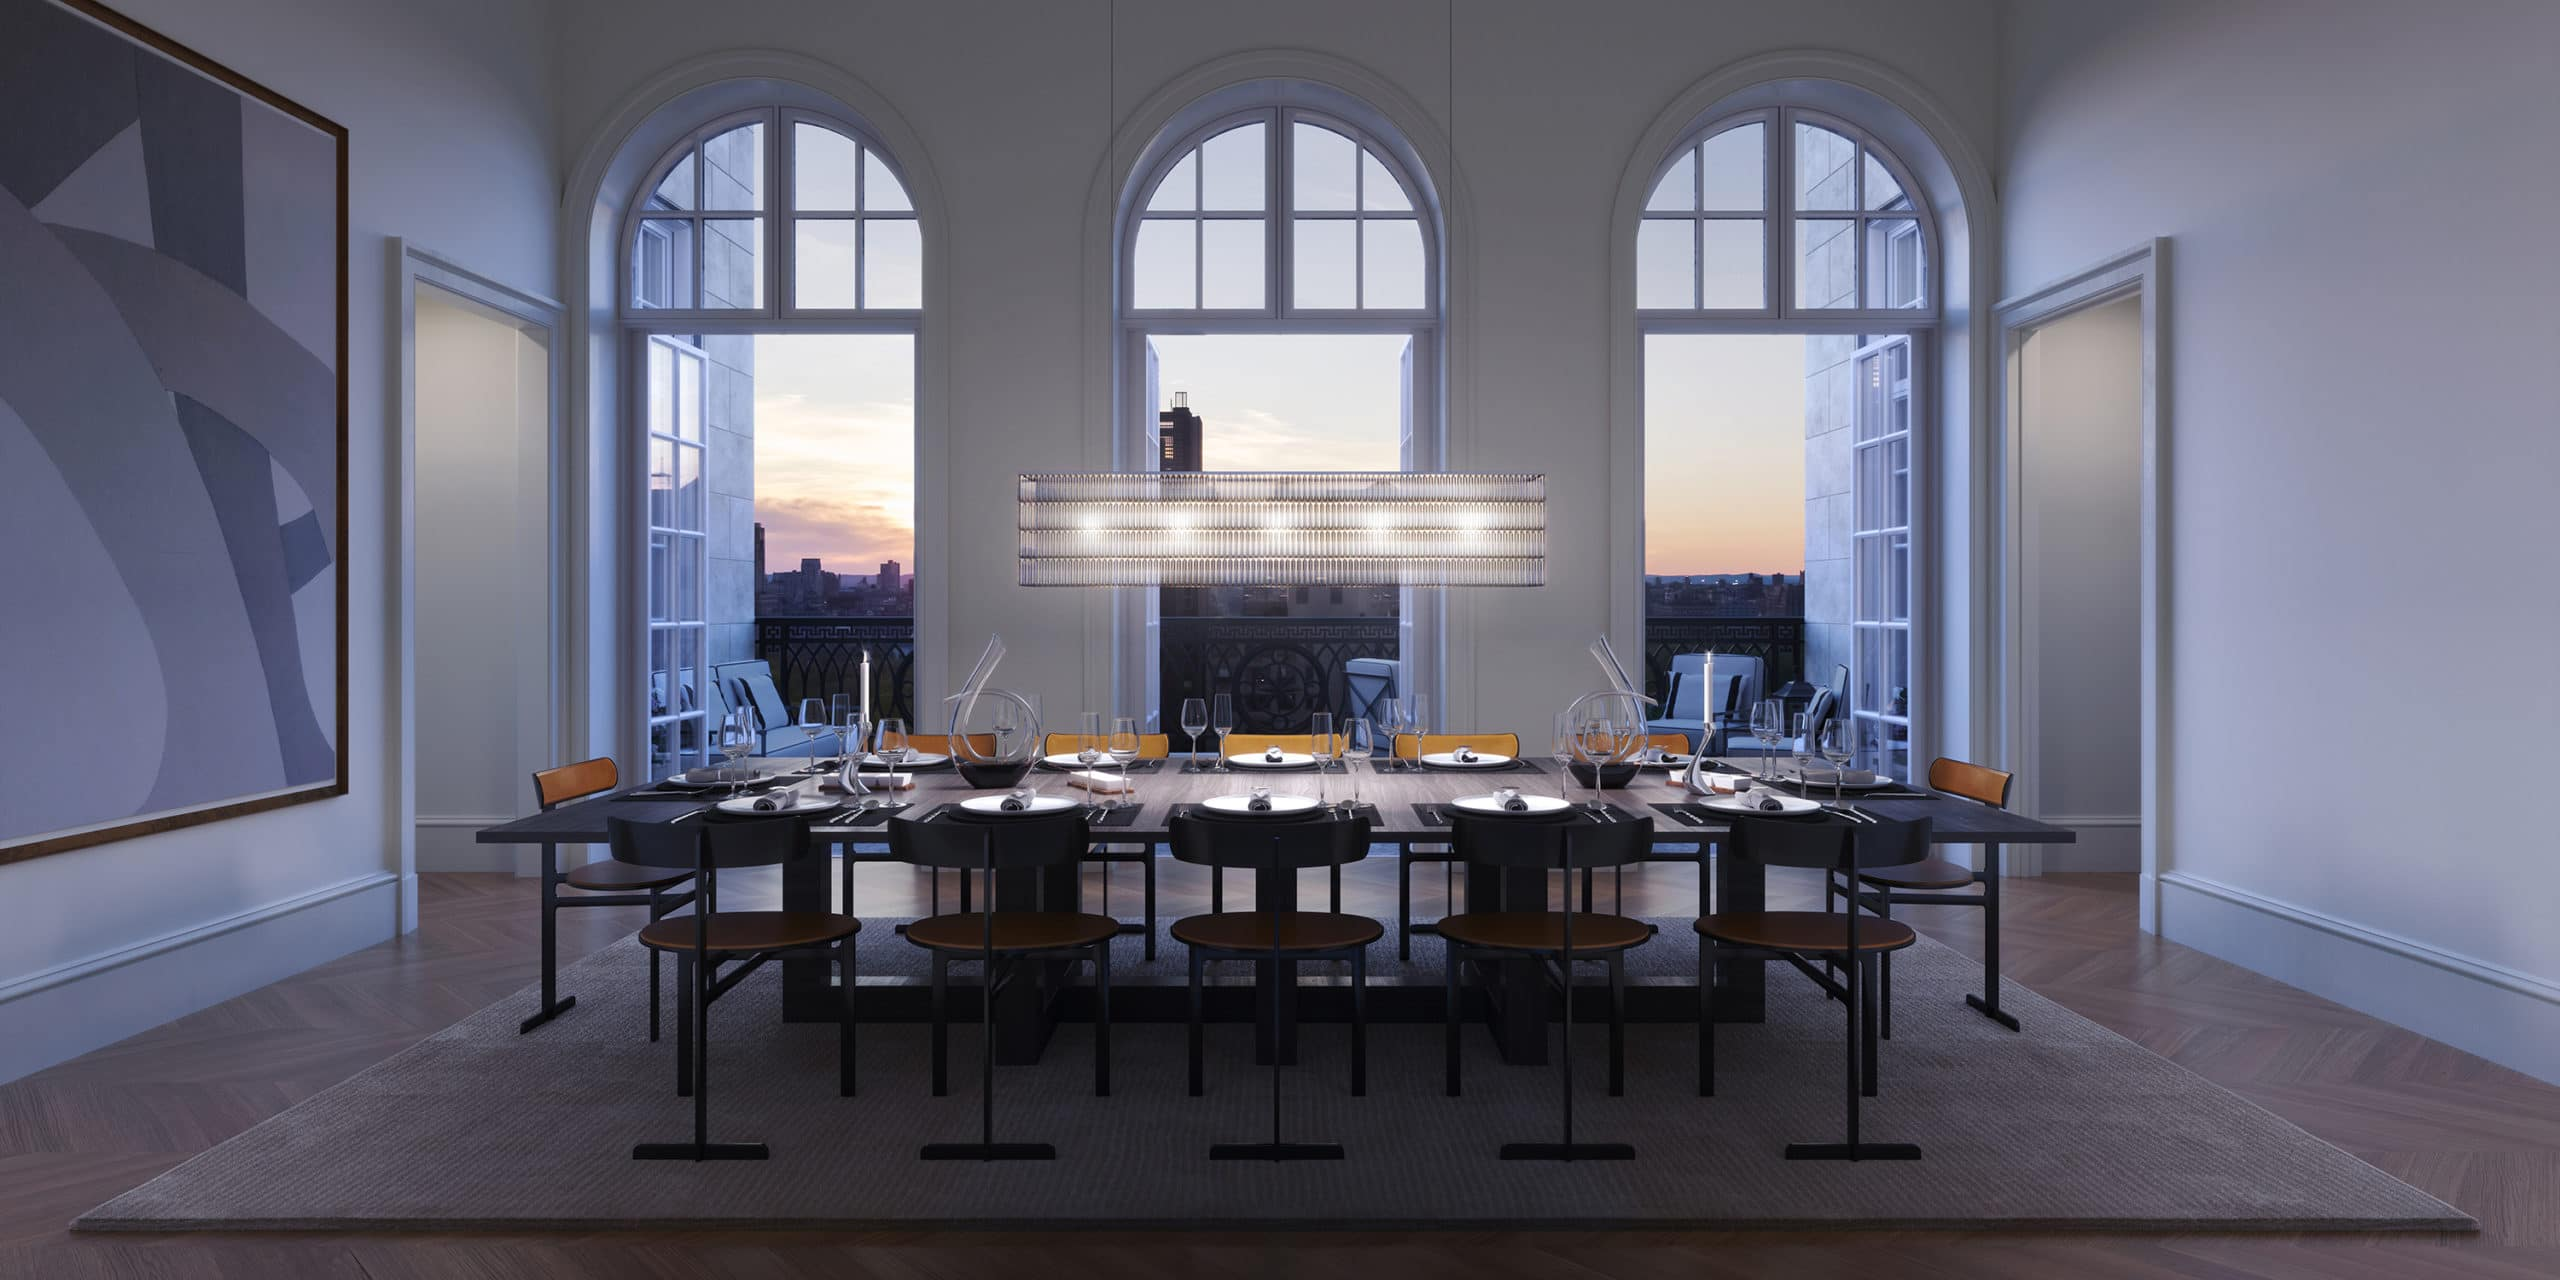 Dining room at The Benson luxury condos in NYC. Tall, arched windows, dark dining table, white walls and long chandelier.